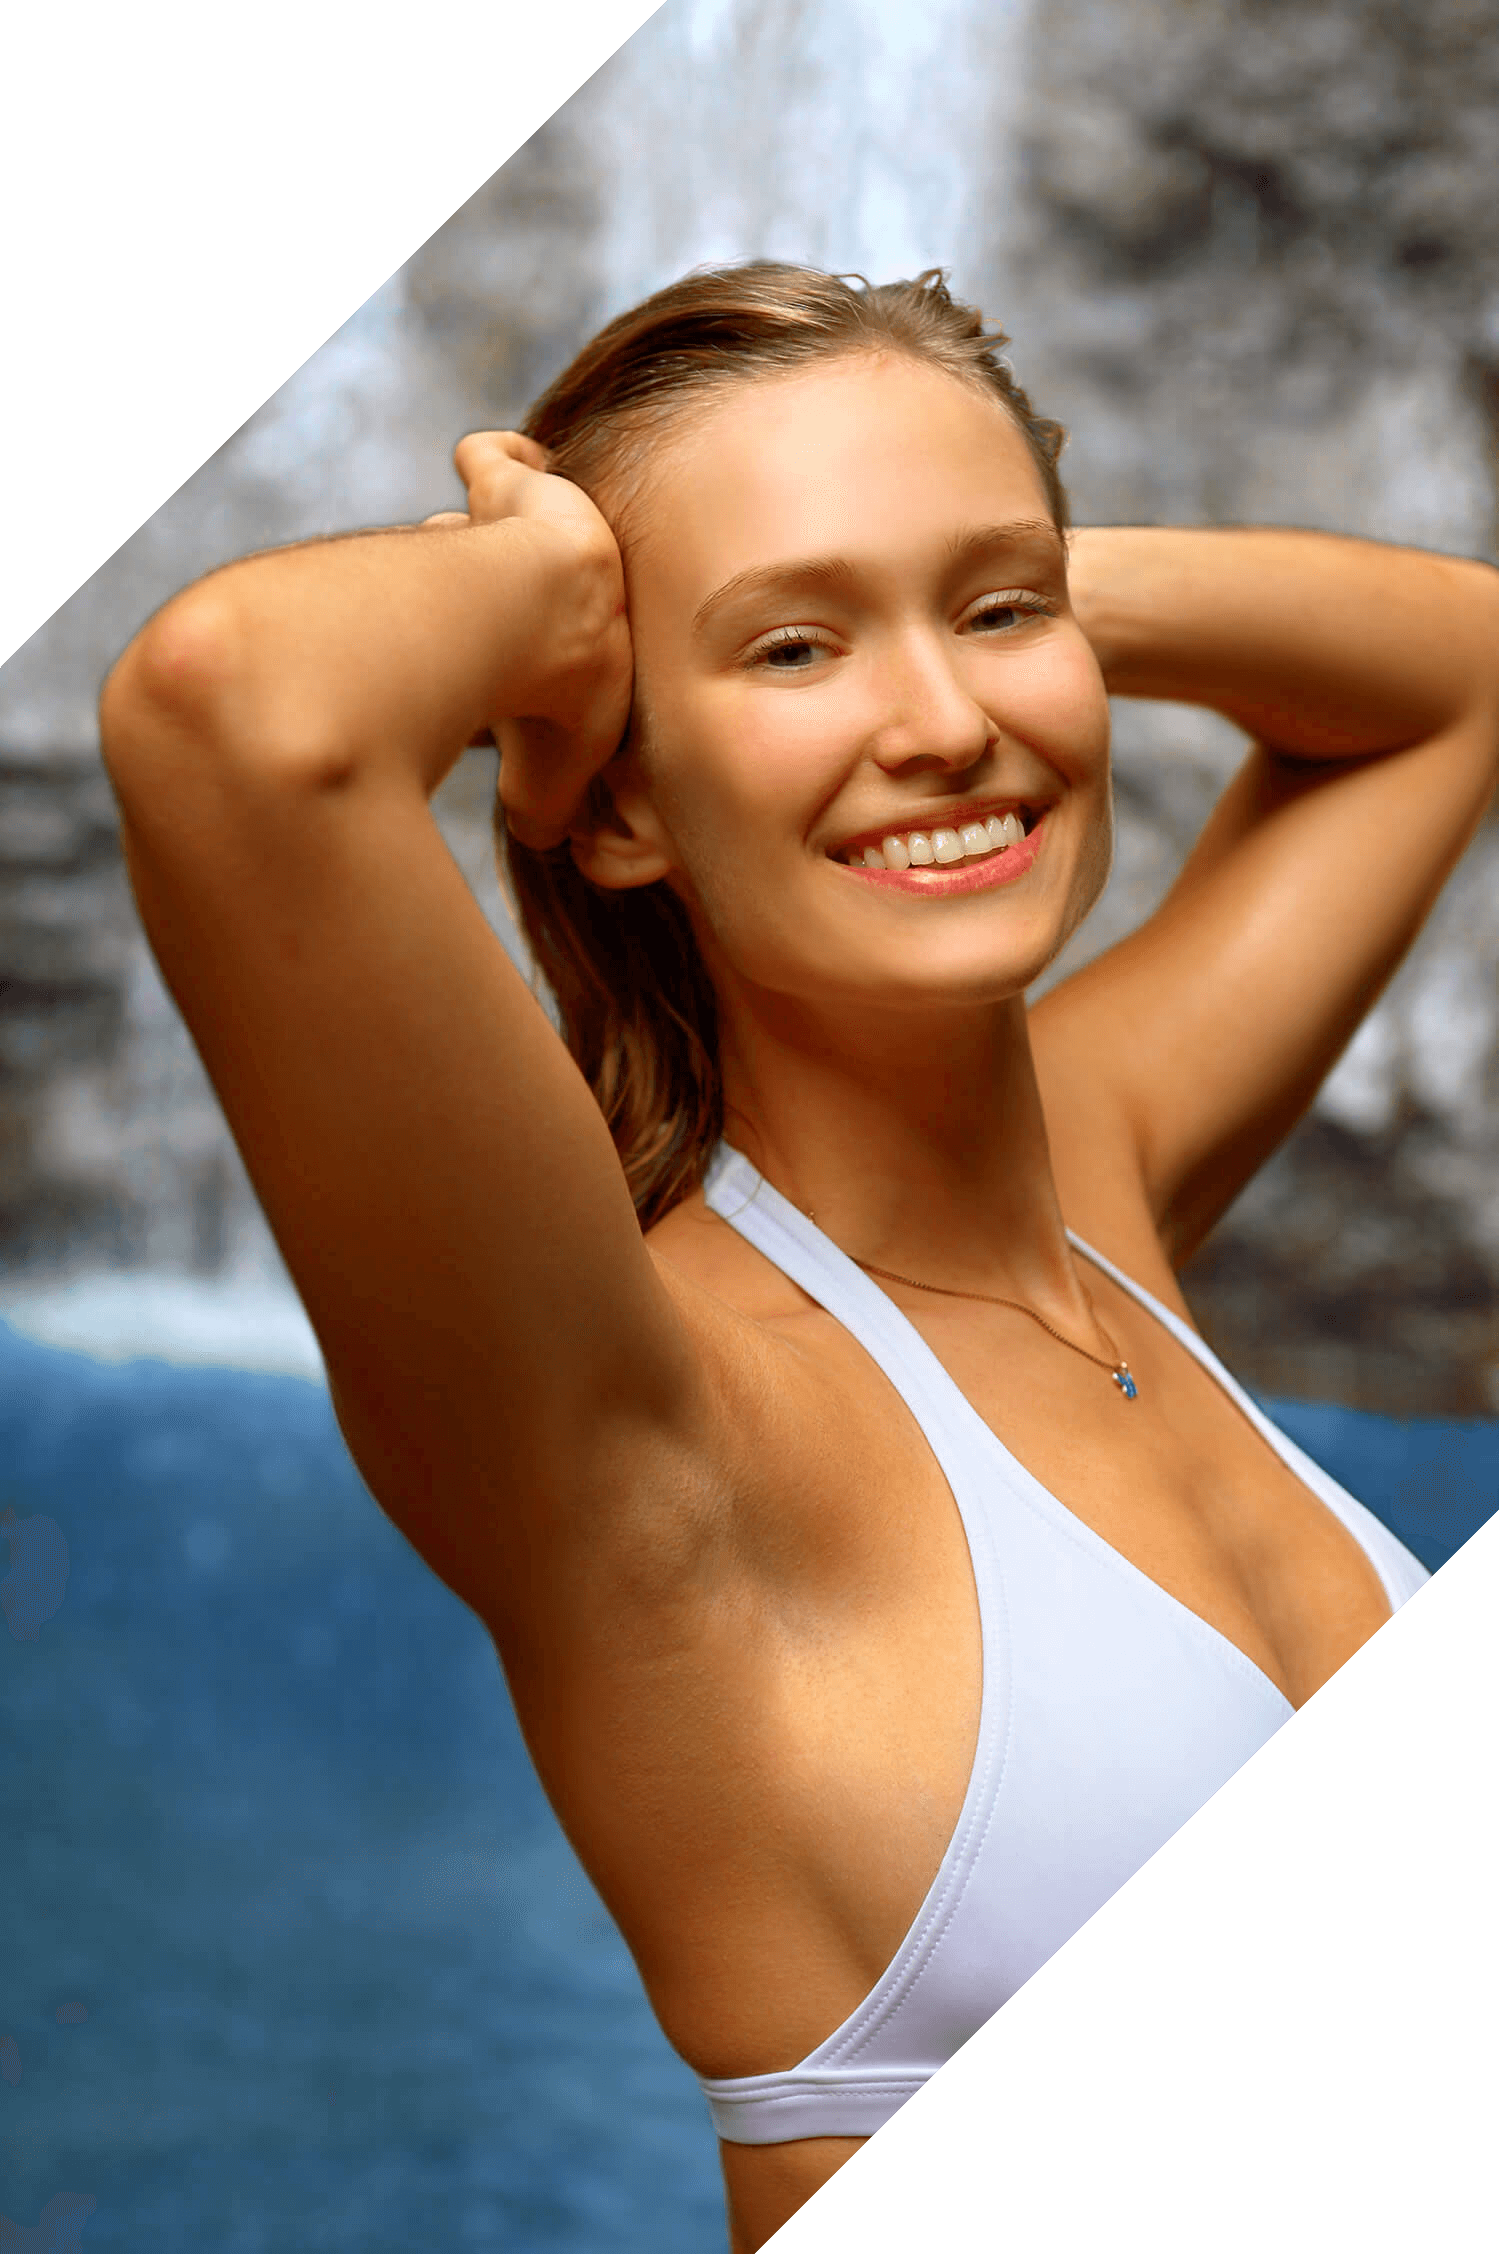 Colon cleanse benefits Colon Hydrotherapy benefits